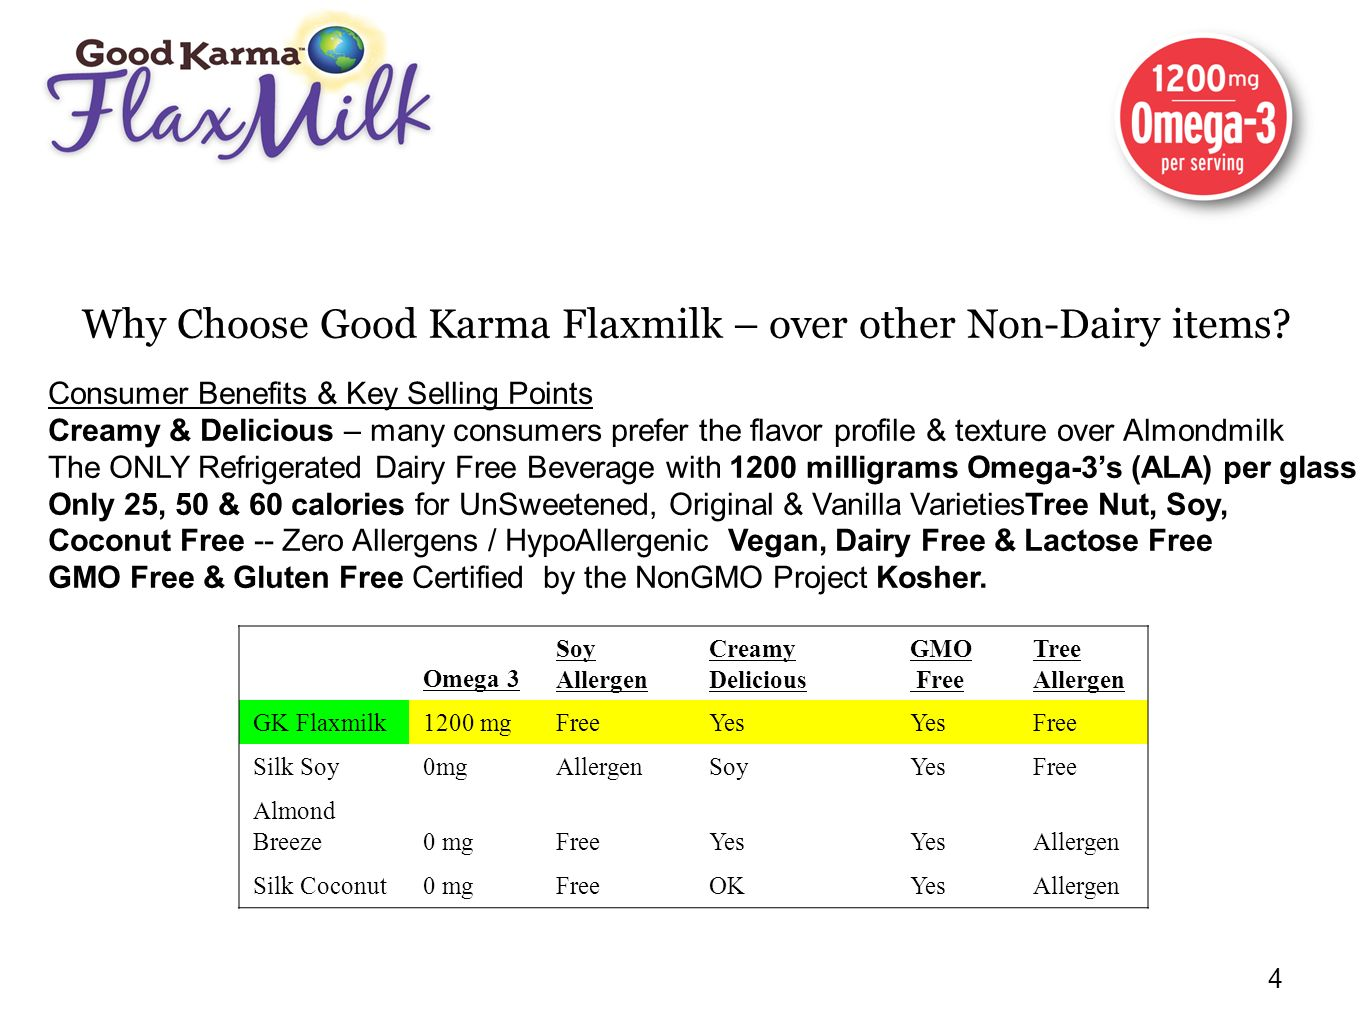 Why Choose Good Karma Flaxmilk – over other Non-Dairy items